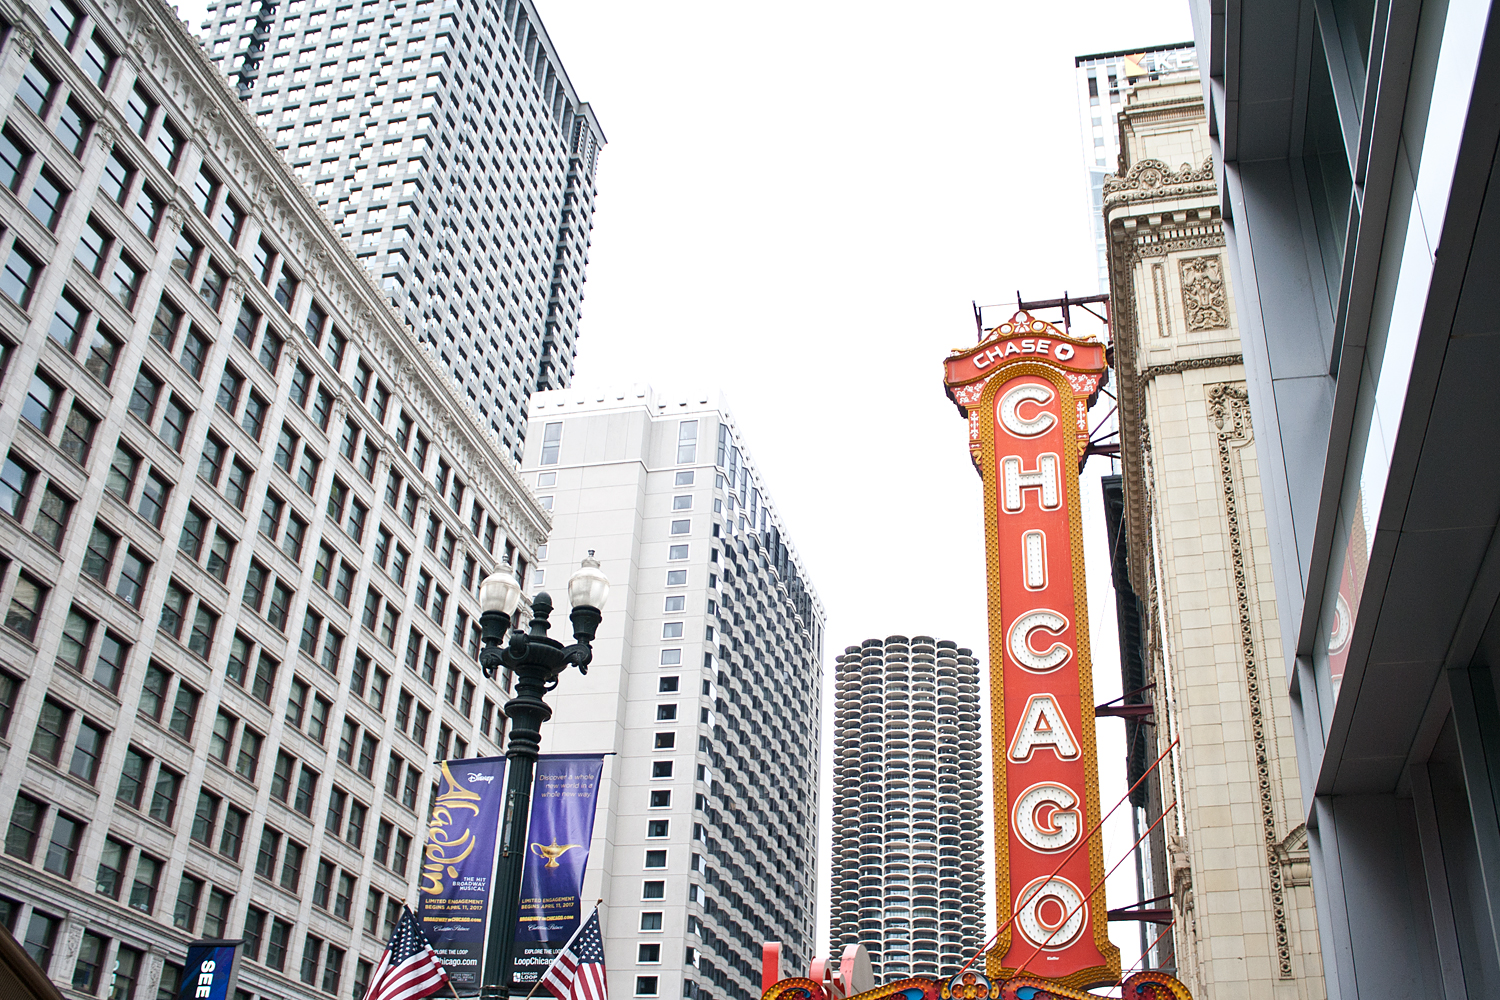 02chicago-theater-travel-landmark